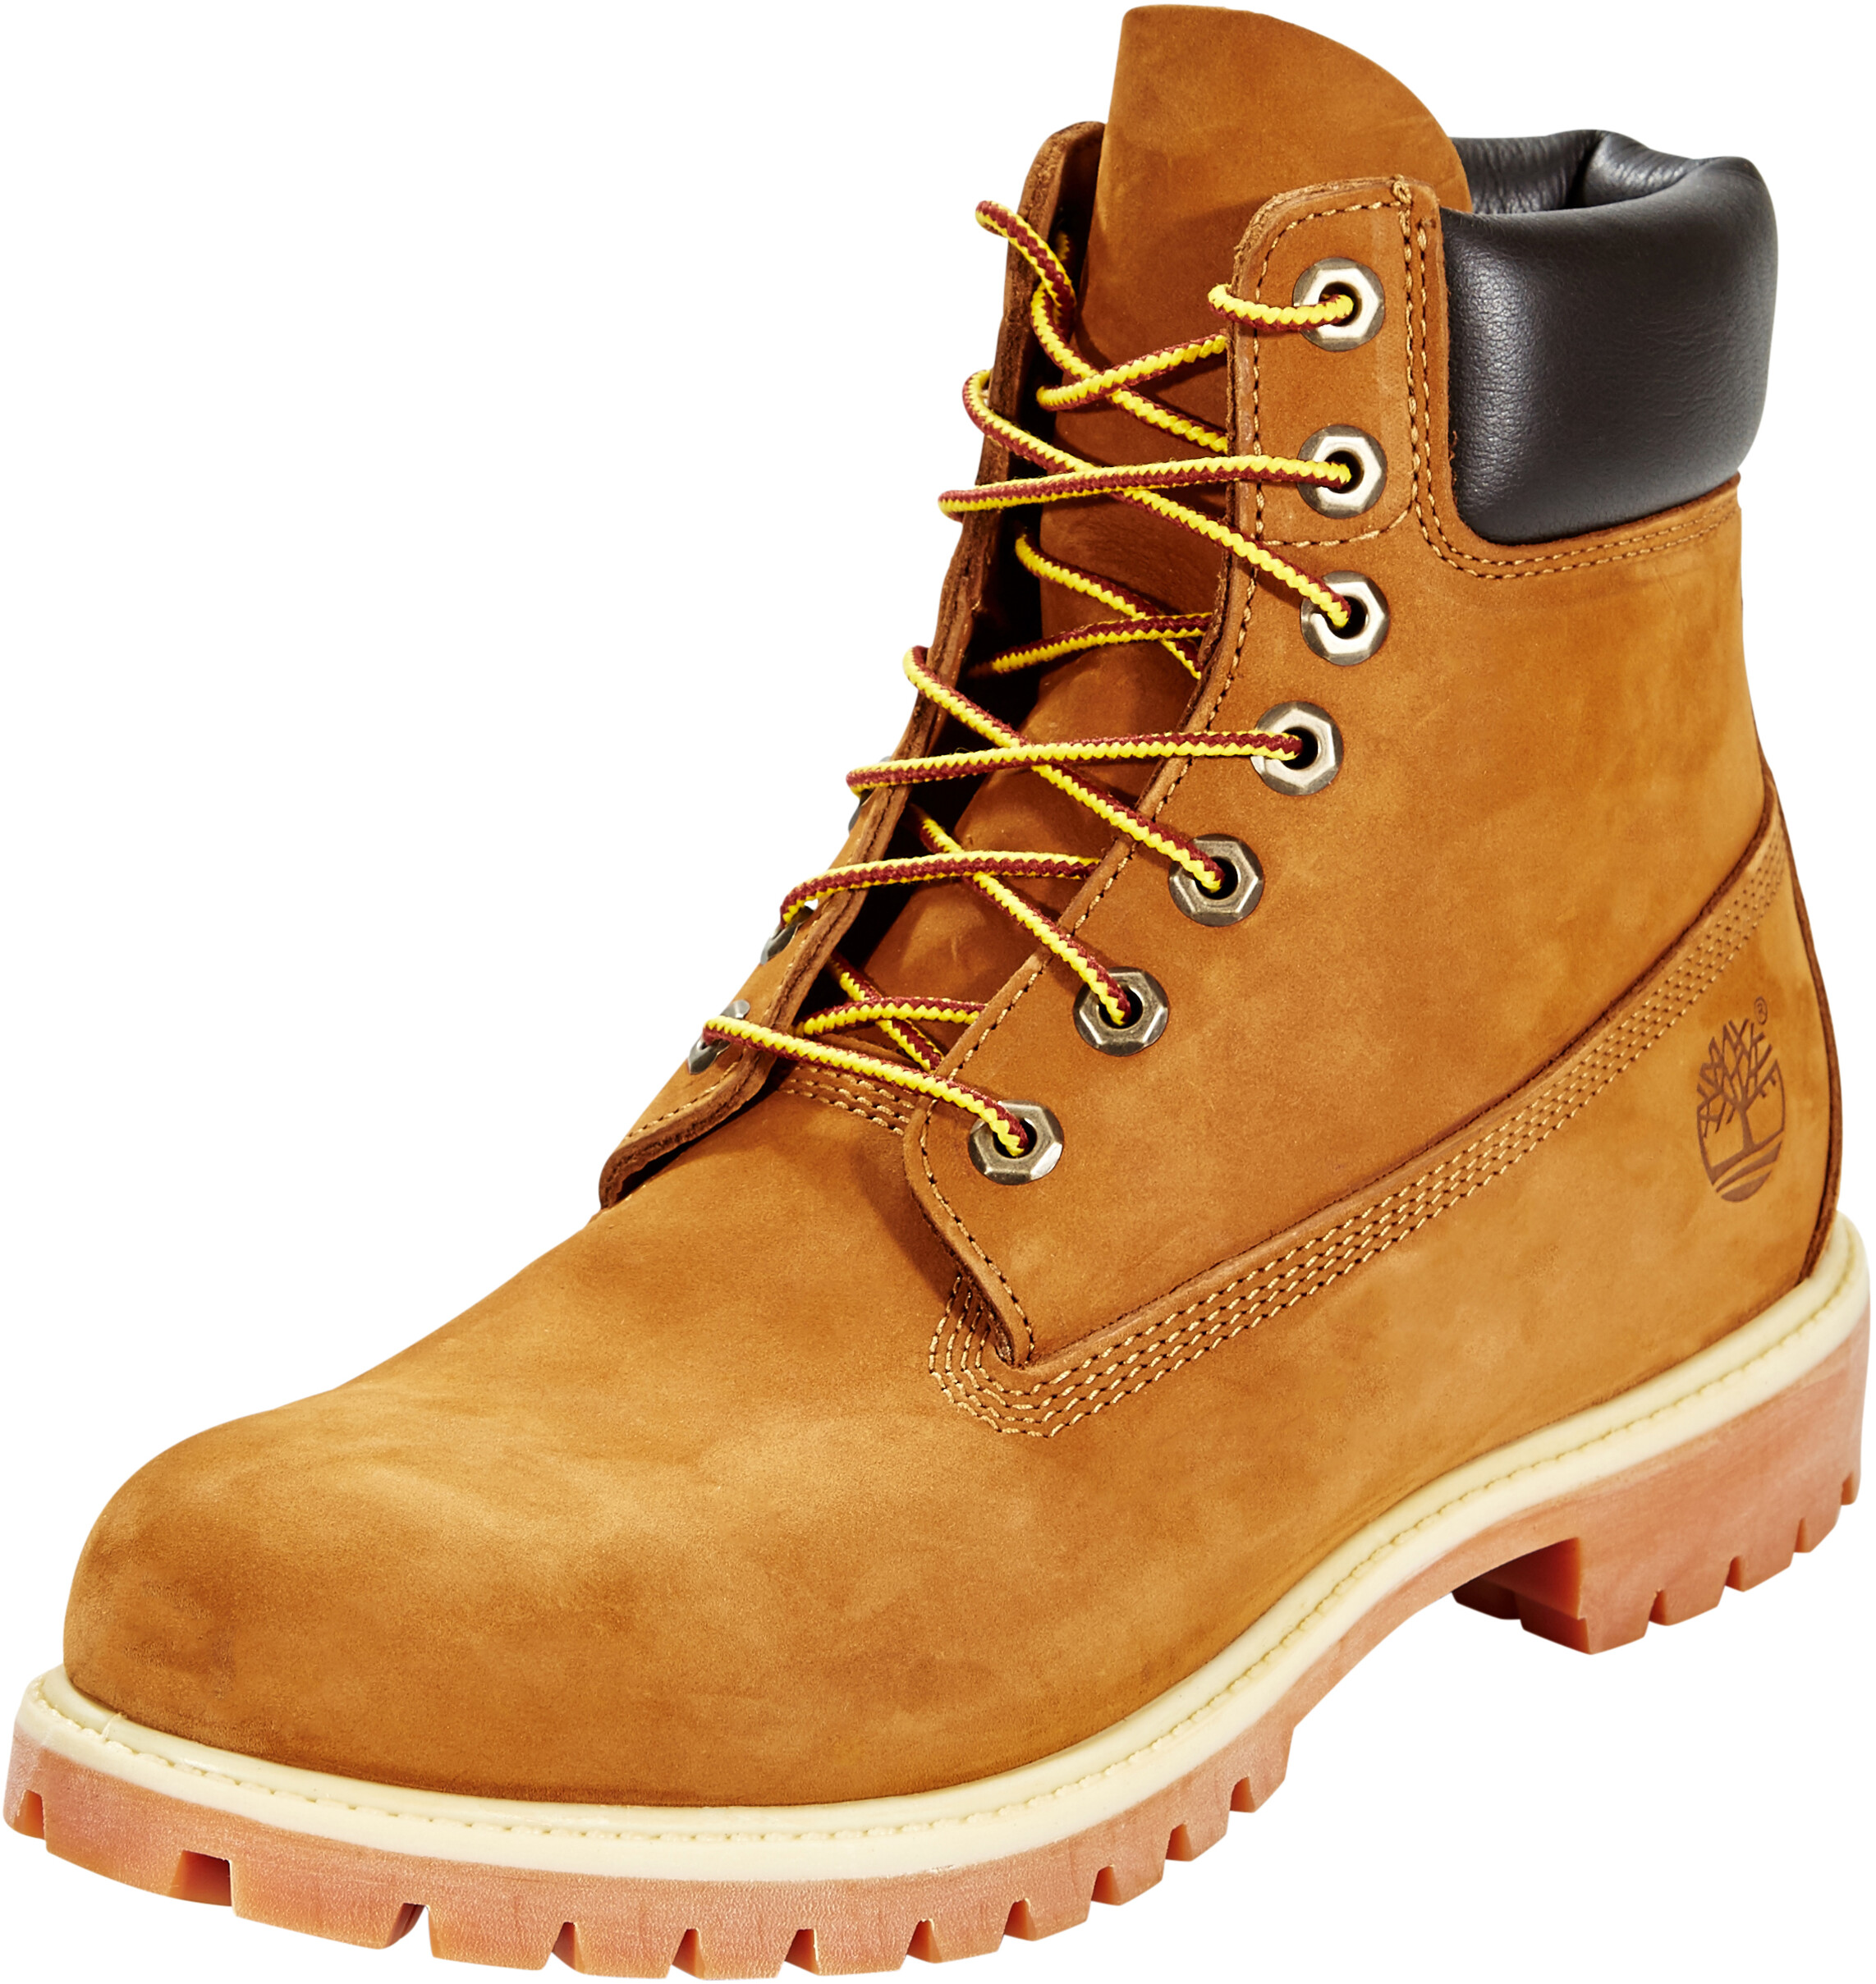 Timberland Icon Collection Premium Miehet kengät 6